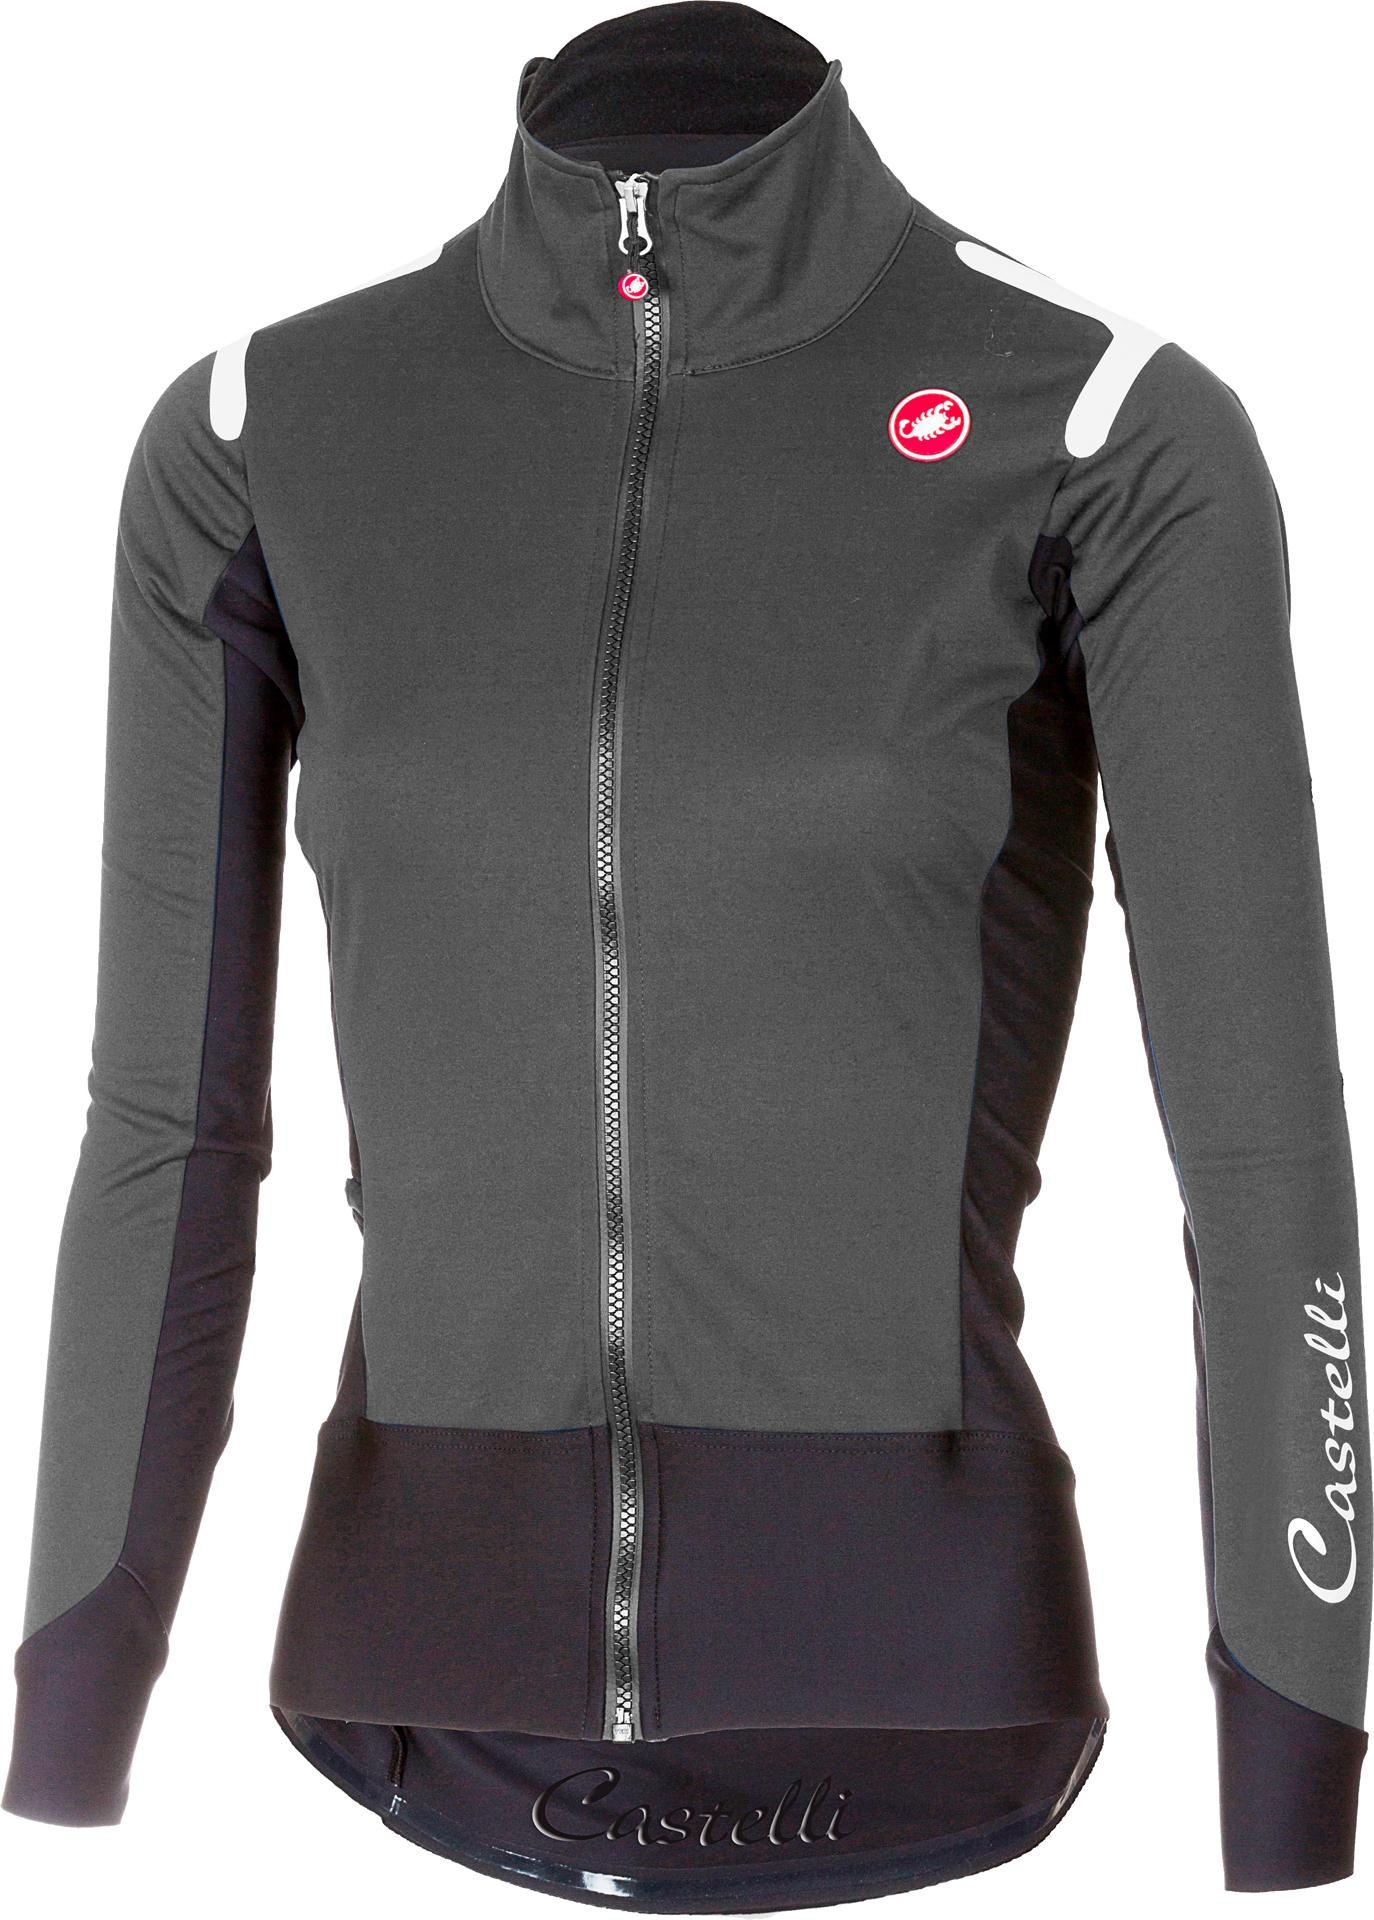 Castelli Fietsjack Dames Grijs Zwart / CA Alpha Ros W Light Jacket Dark Gray/Black